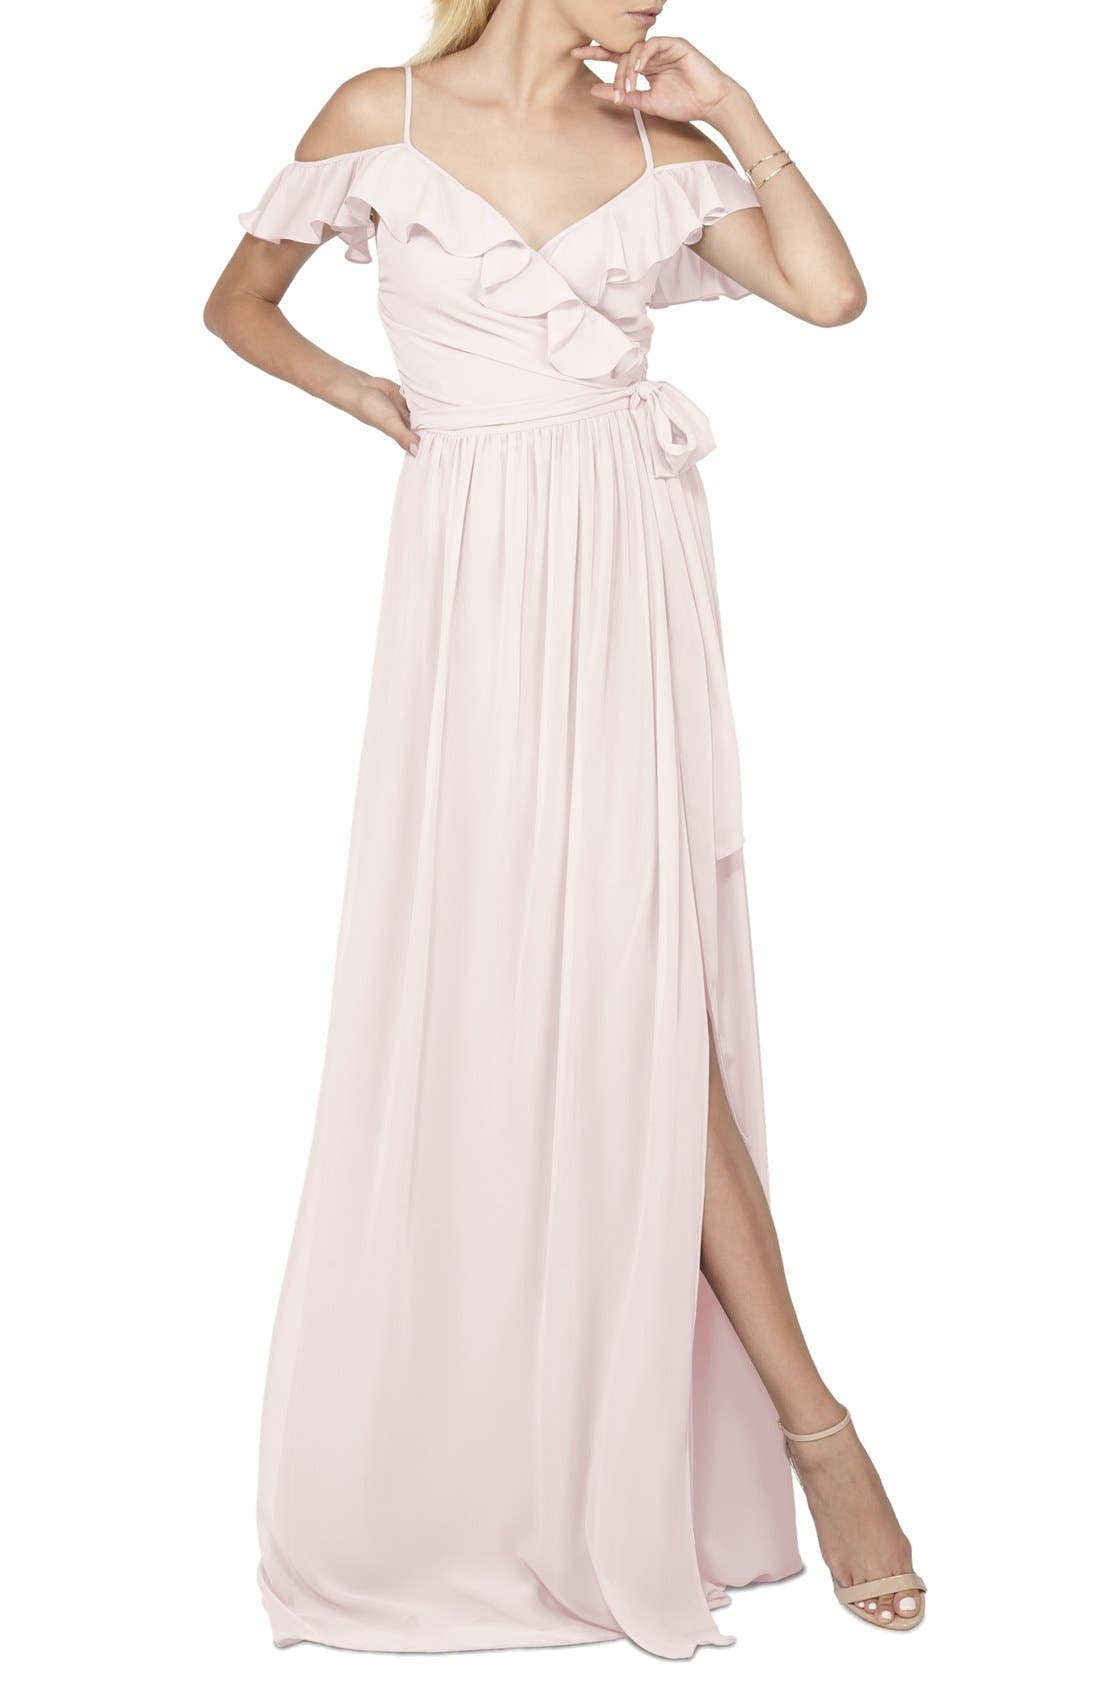 Alternate Image 1 Selected - Ceremony by Joanna August 'Portia' Off the Shoulder Ruffle Wrap Chiffon Gown